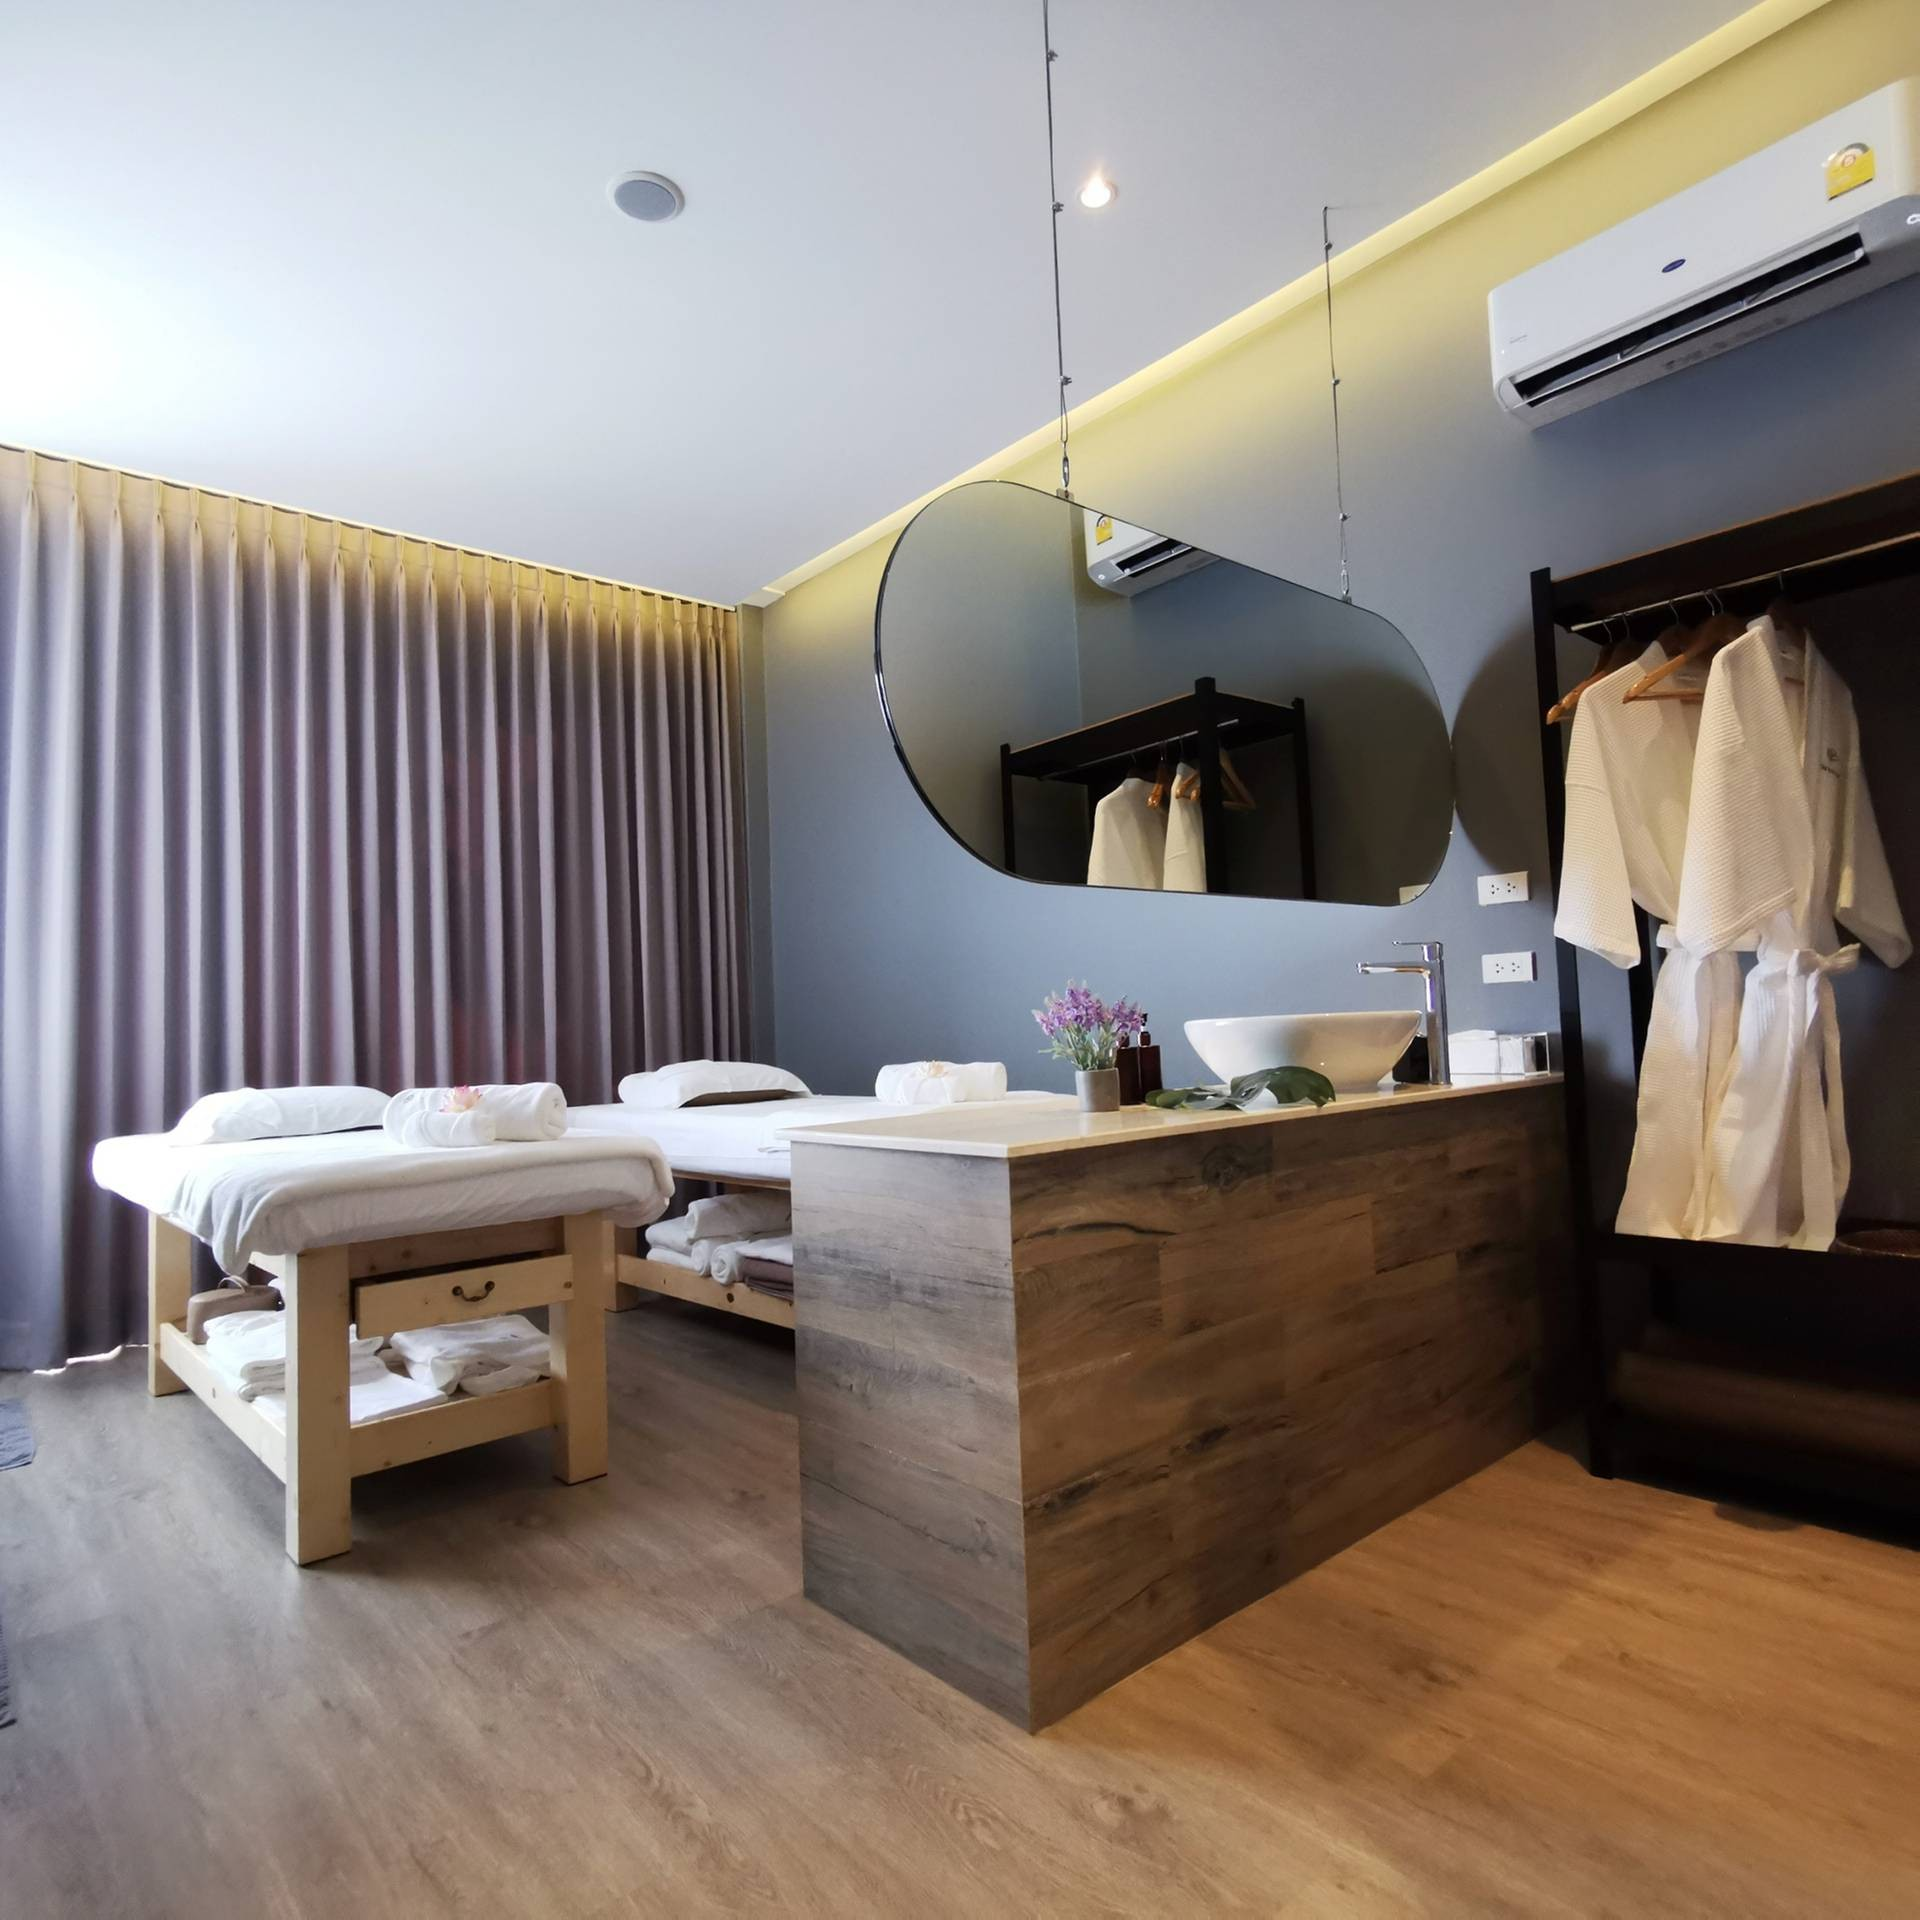 ZENVANA Wellness Spa